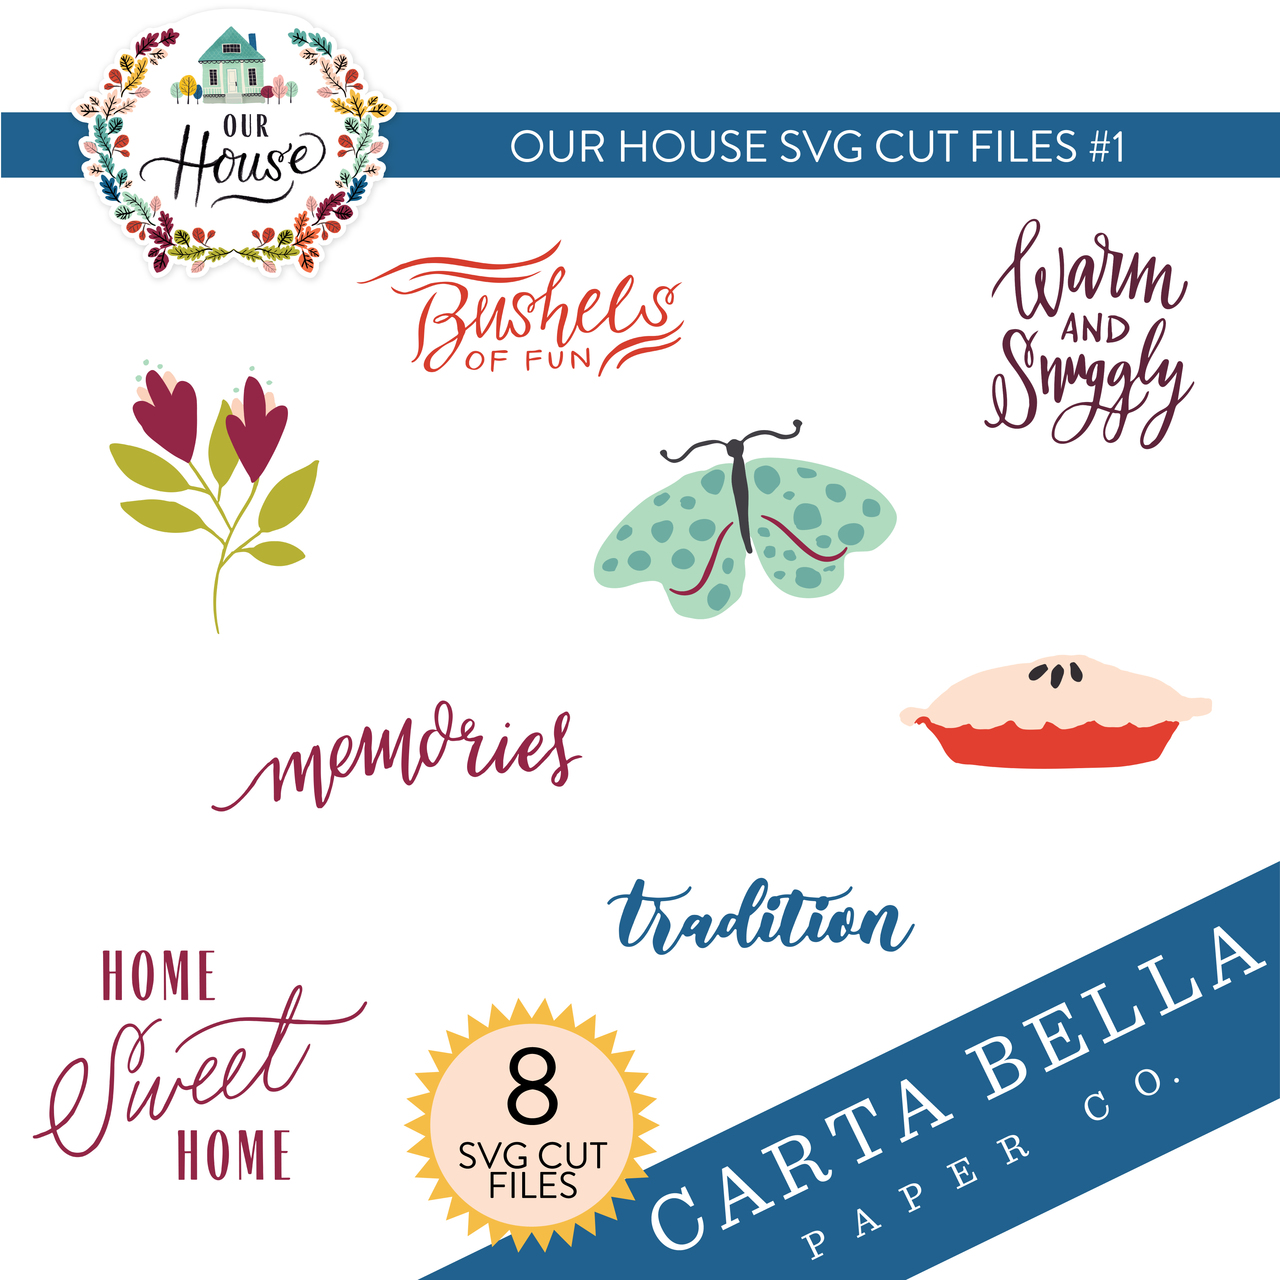 Our House SVG Cut Files #1